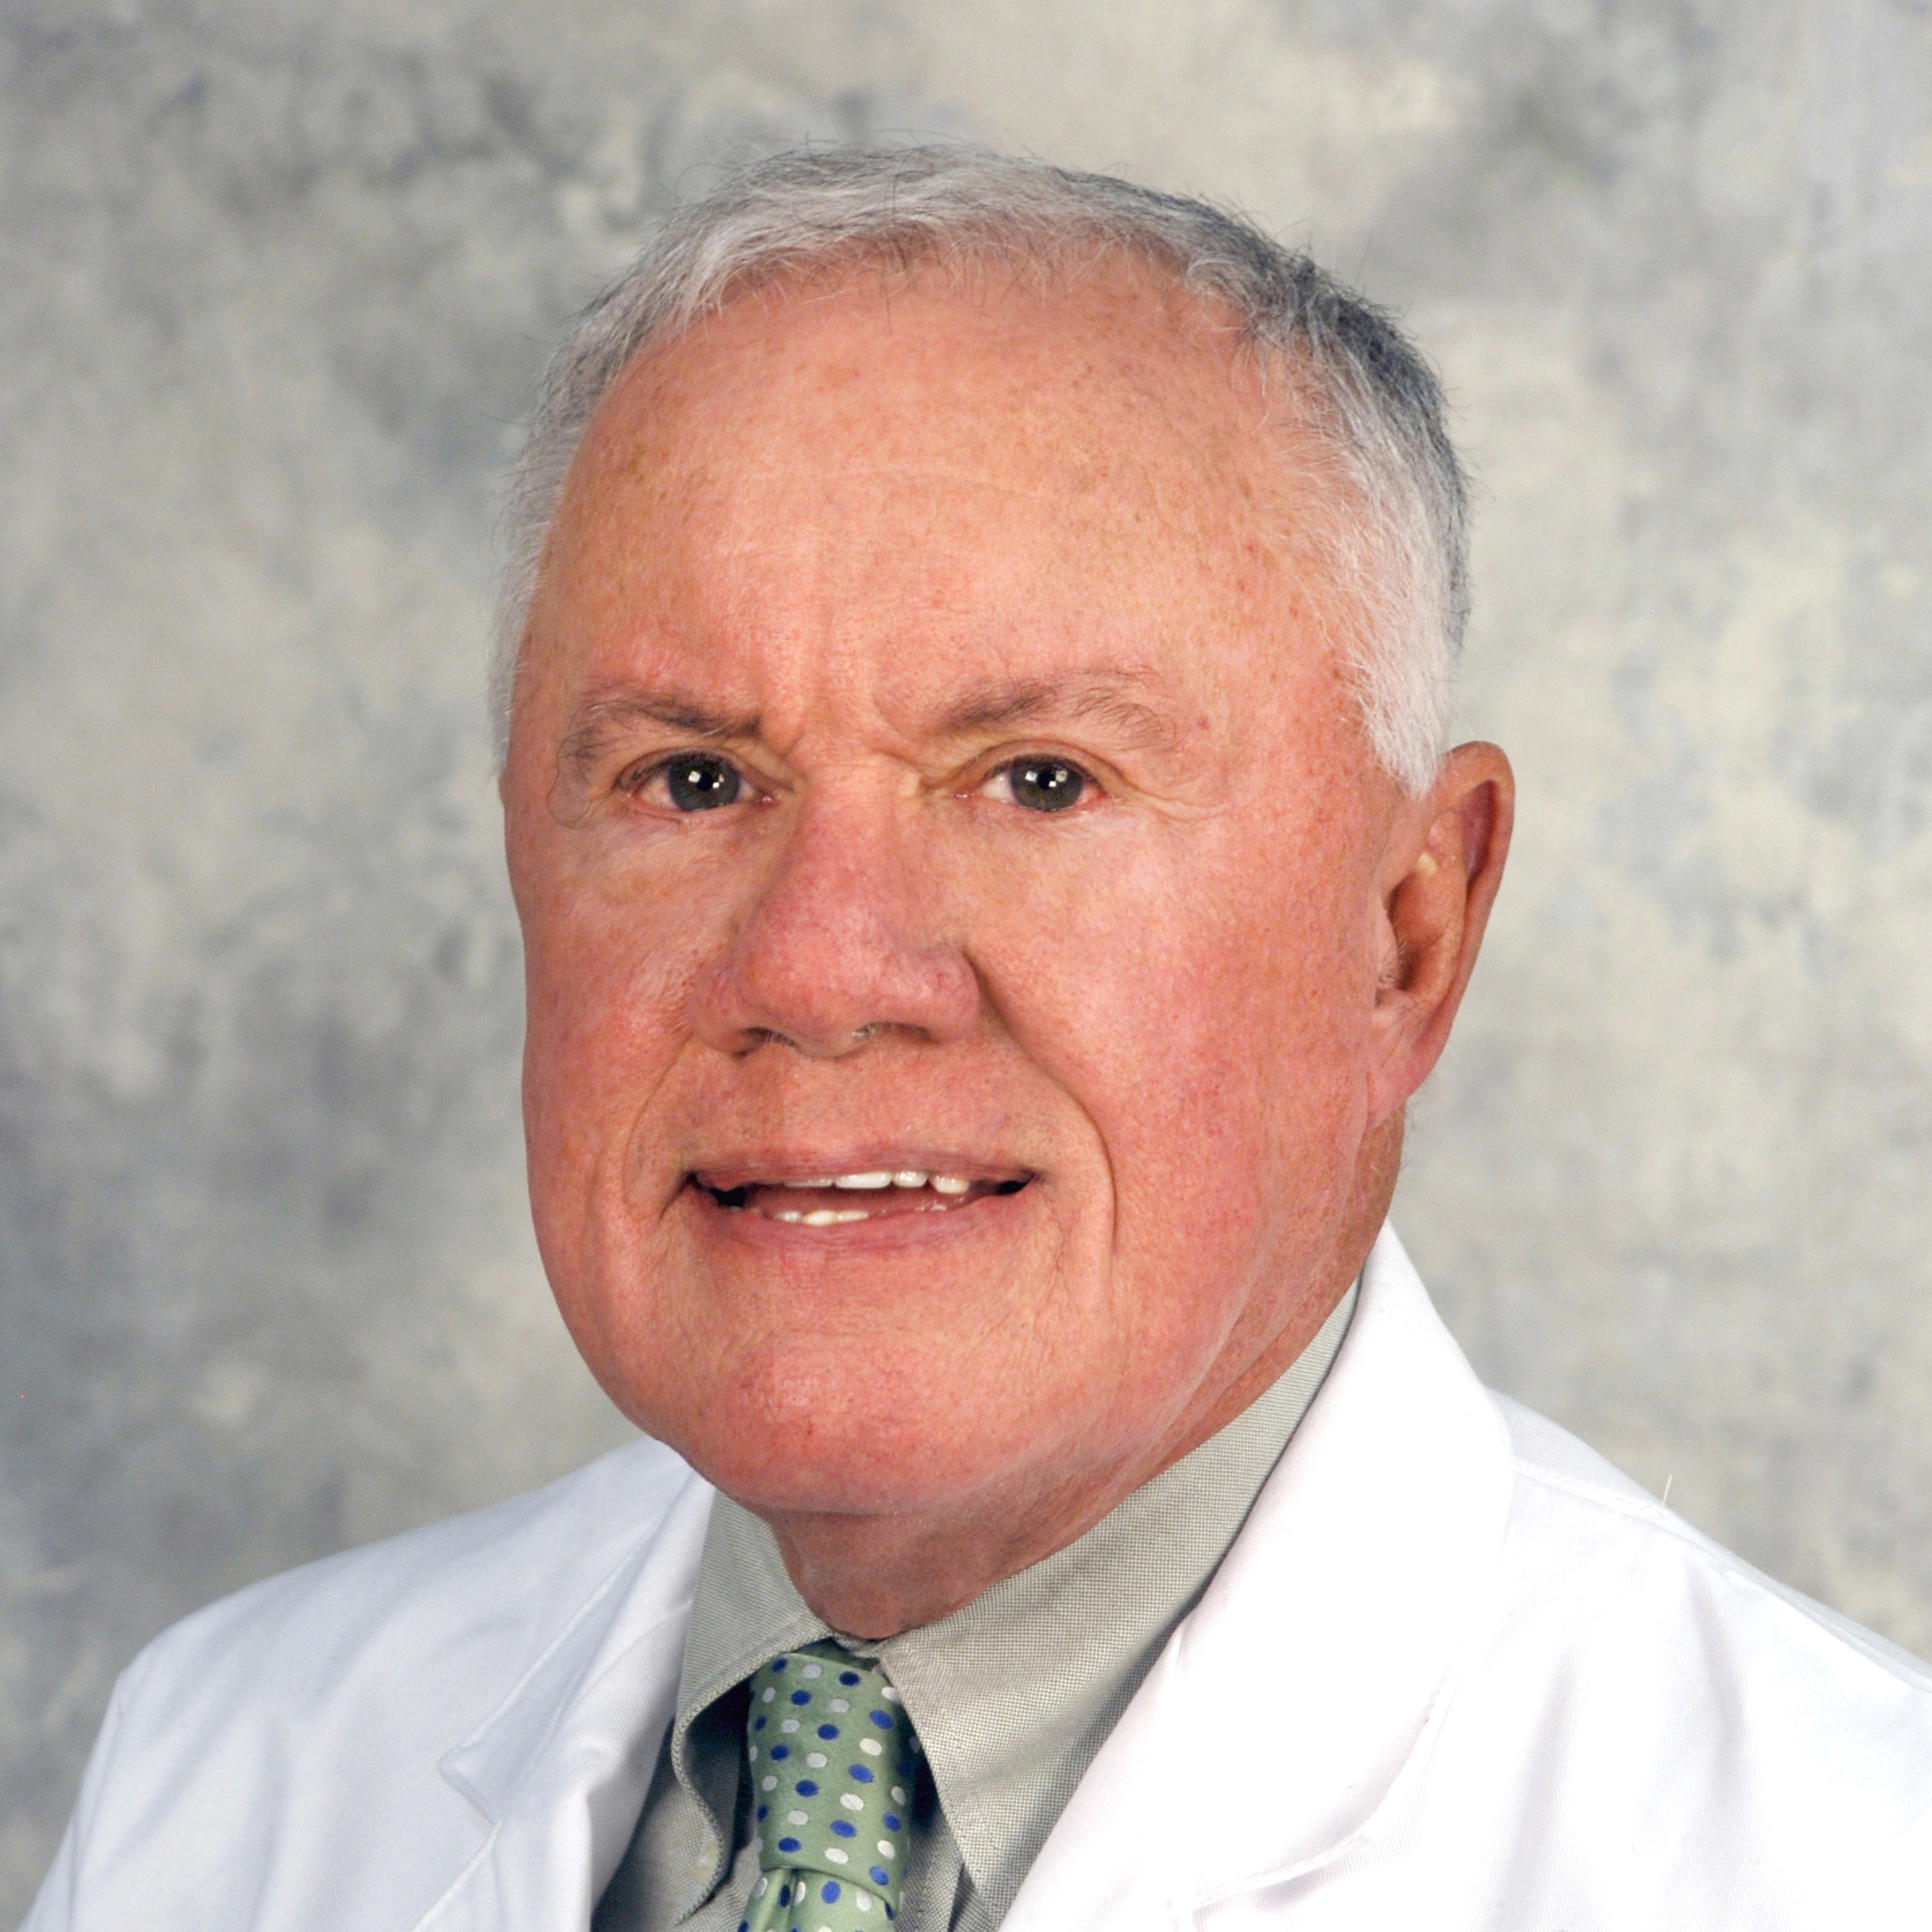 Dr. Tom Devers